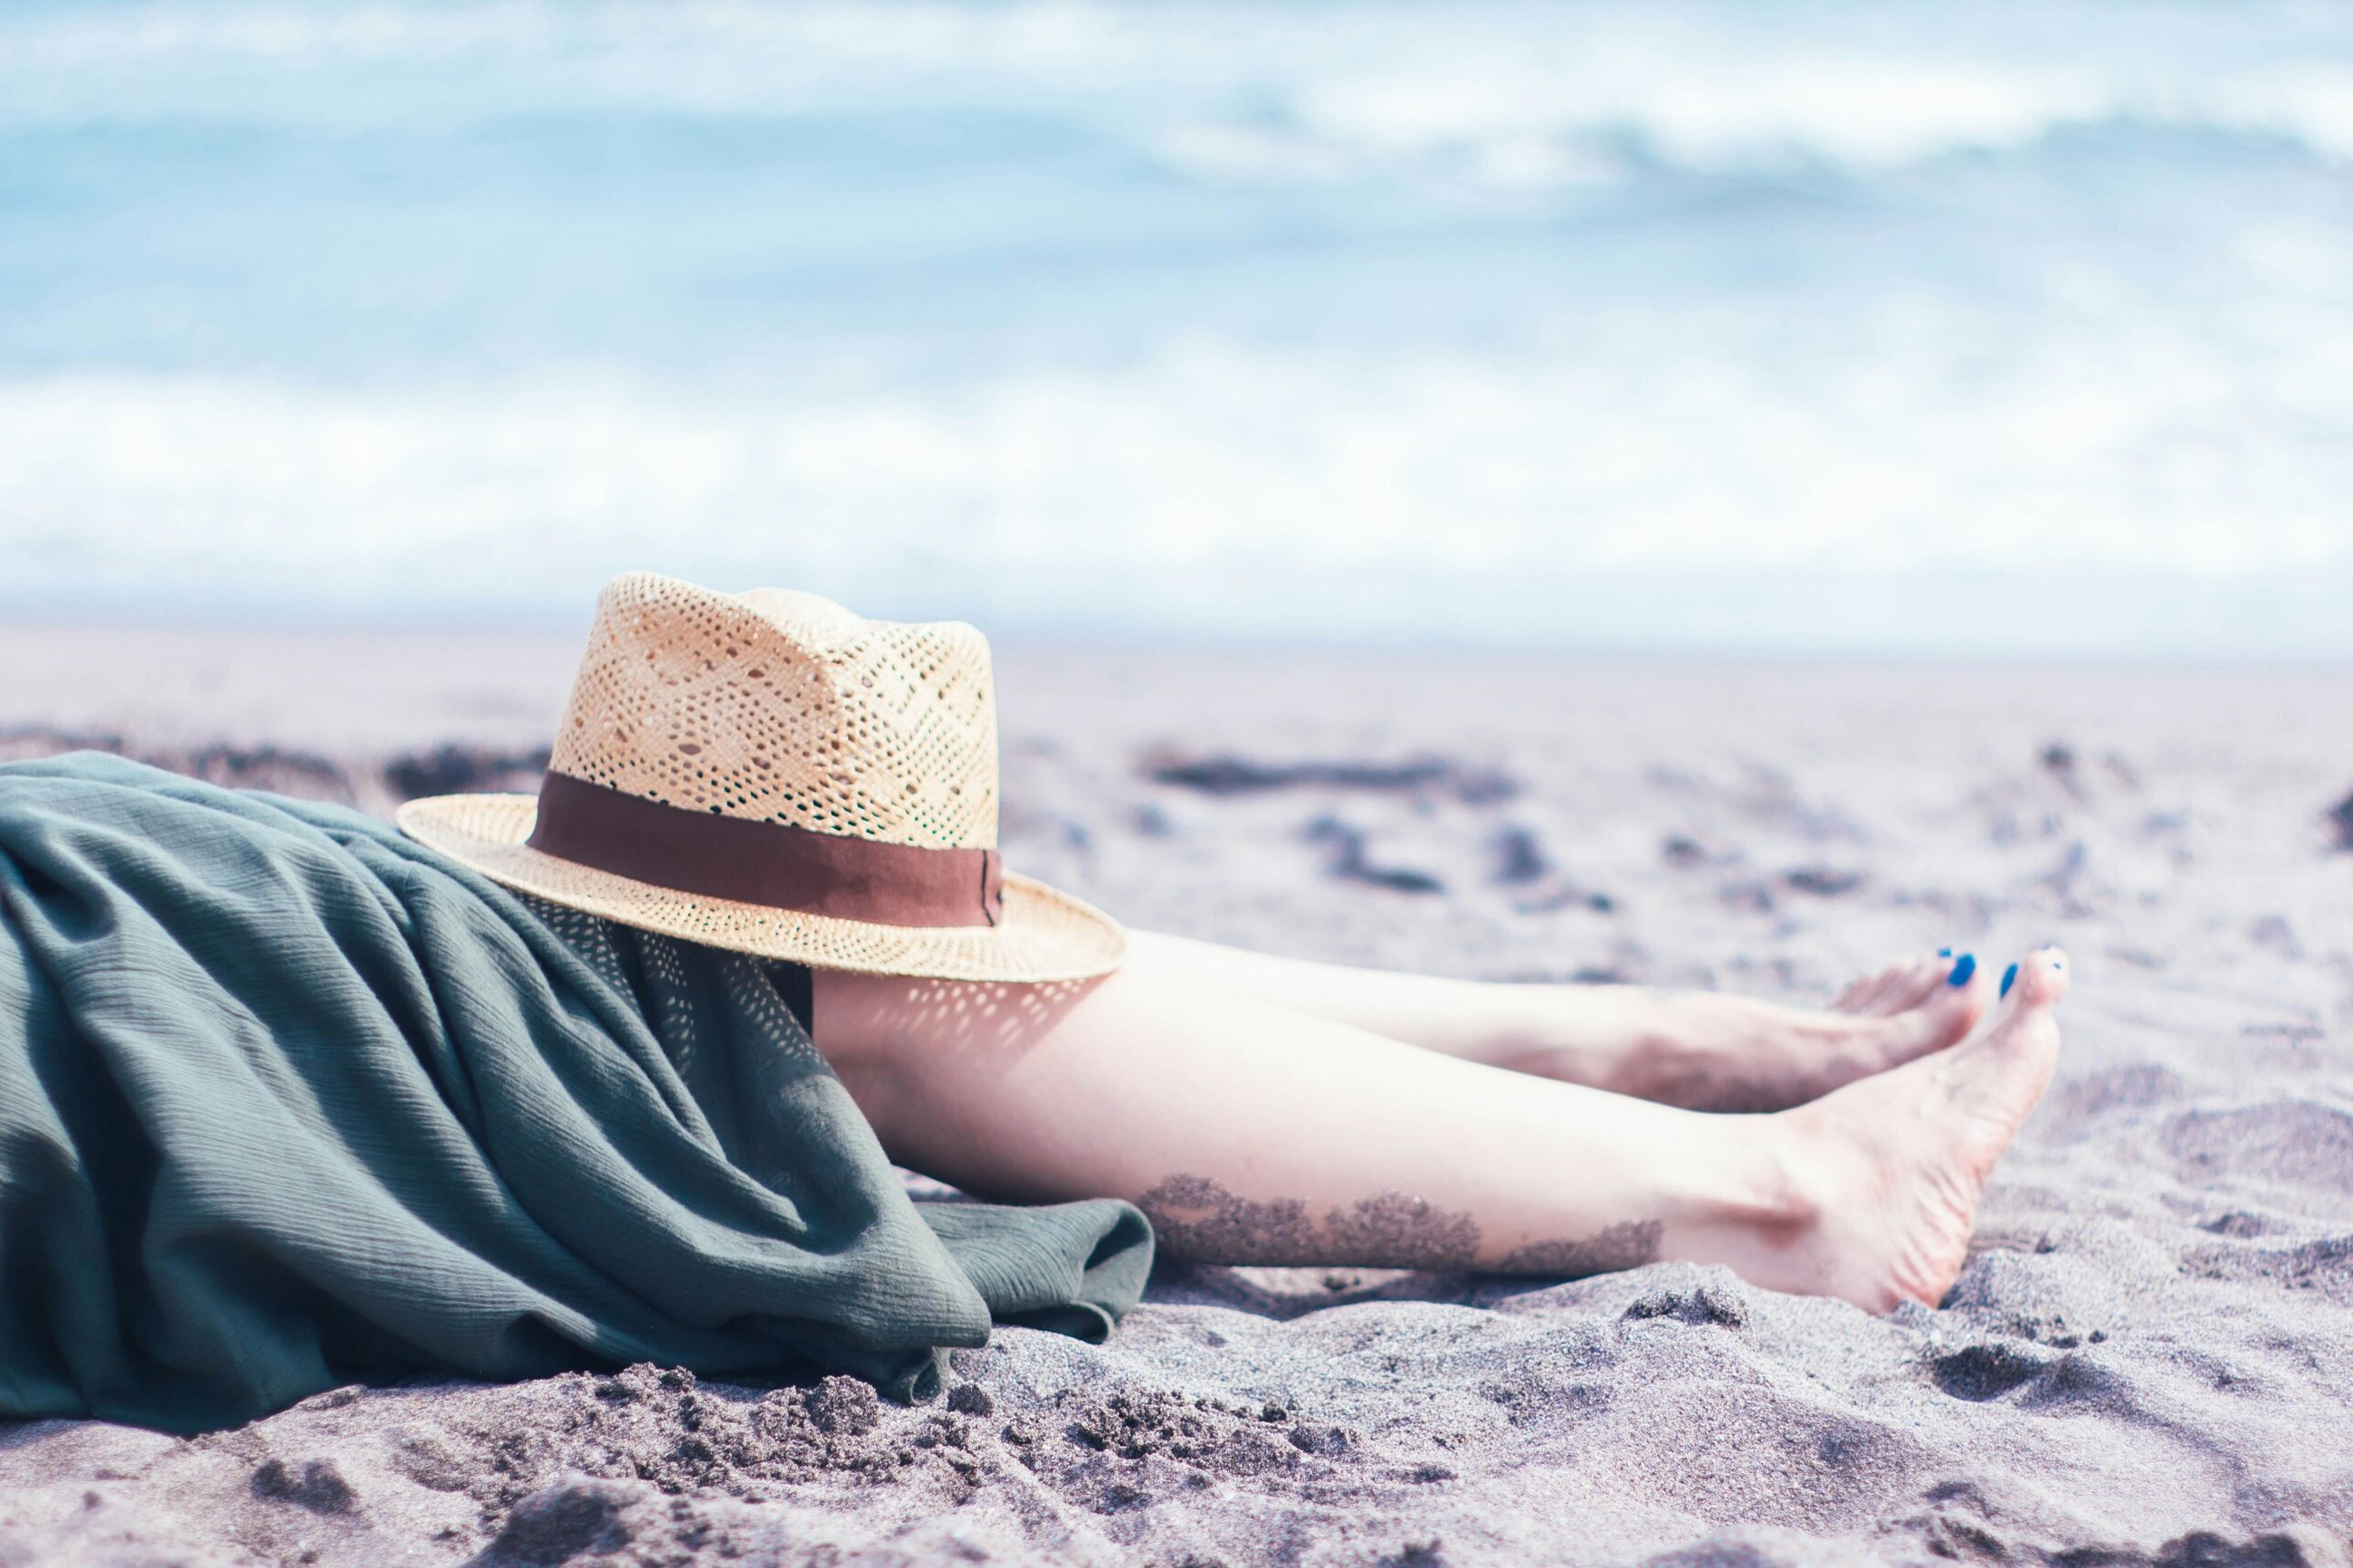 beach, sand, wireless technology, hat, one person, smart phone, real people, portable information device, mobile phone, relaxation, lying down, sea, day, outdoors, women, vacations, nature, leisure activity, lifestyles, water, sky, technology, horizon over water, leisure, sitting, young adult, beauty in nature, low section, young women, close-up, adult, people